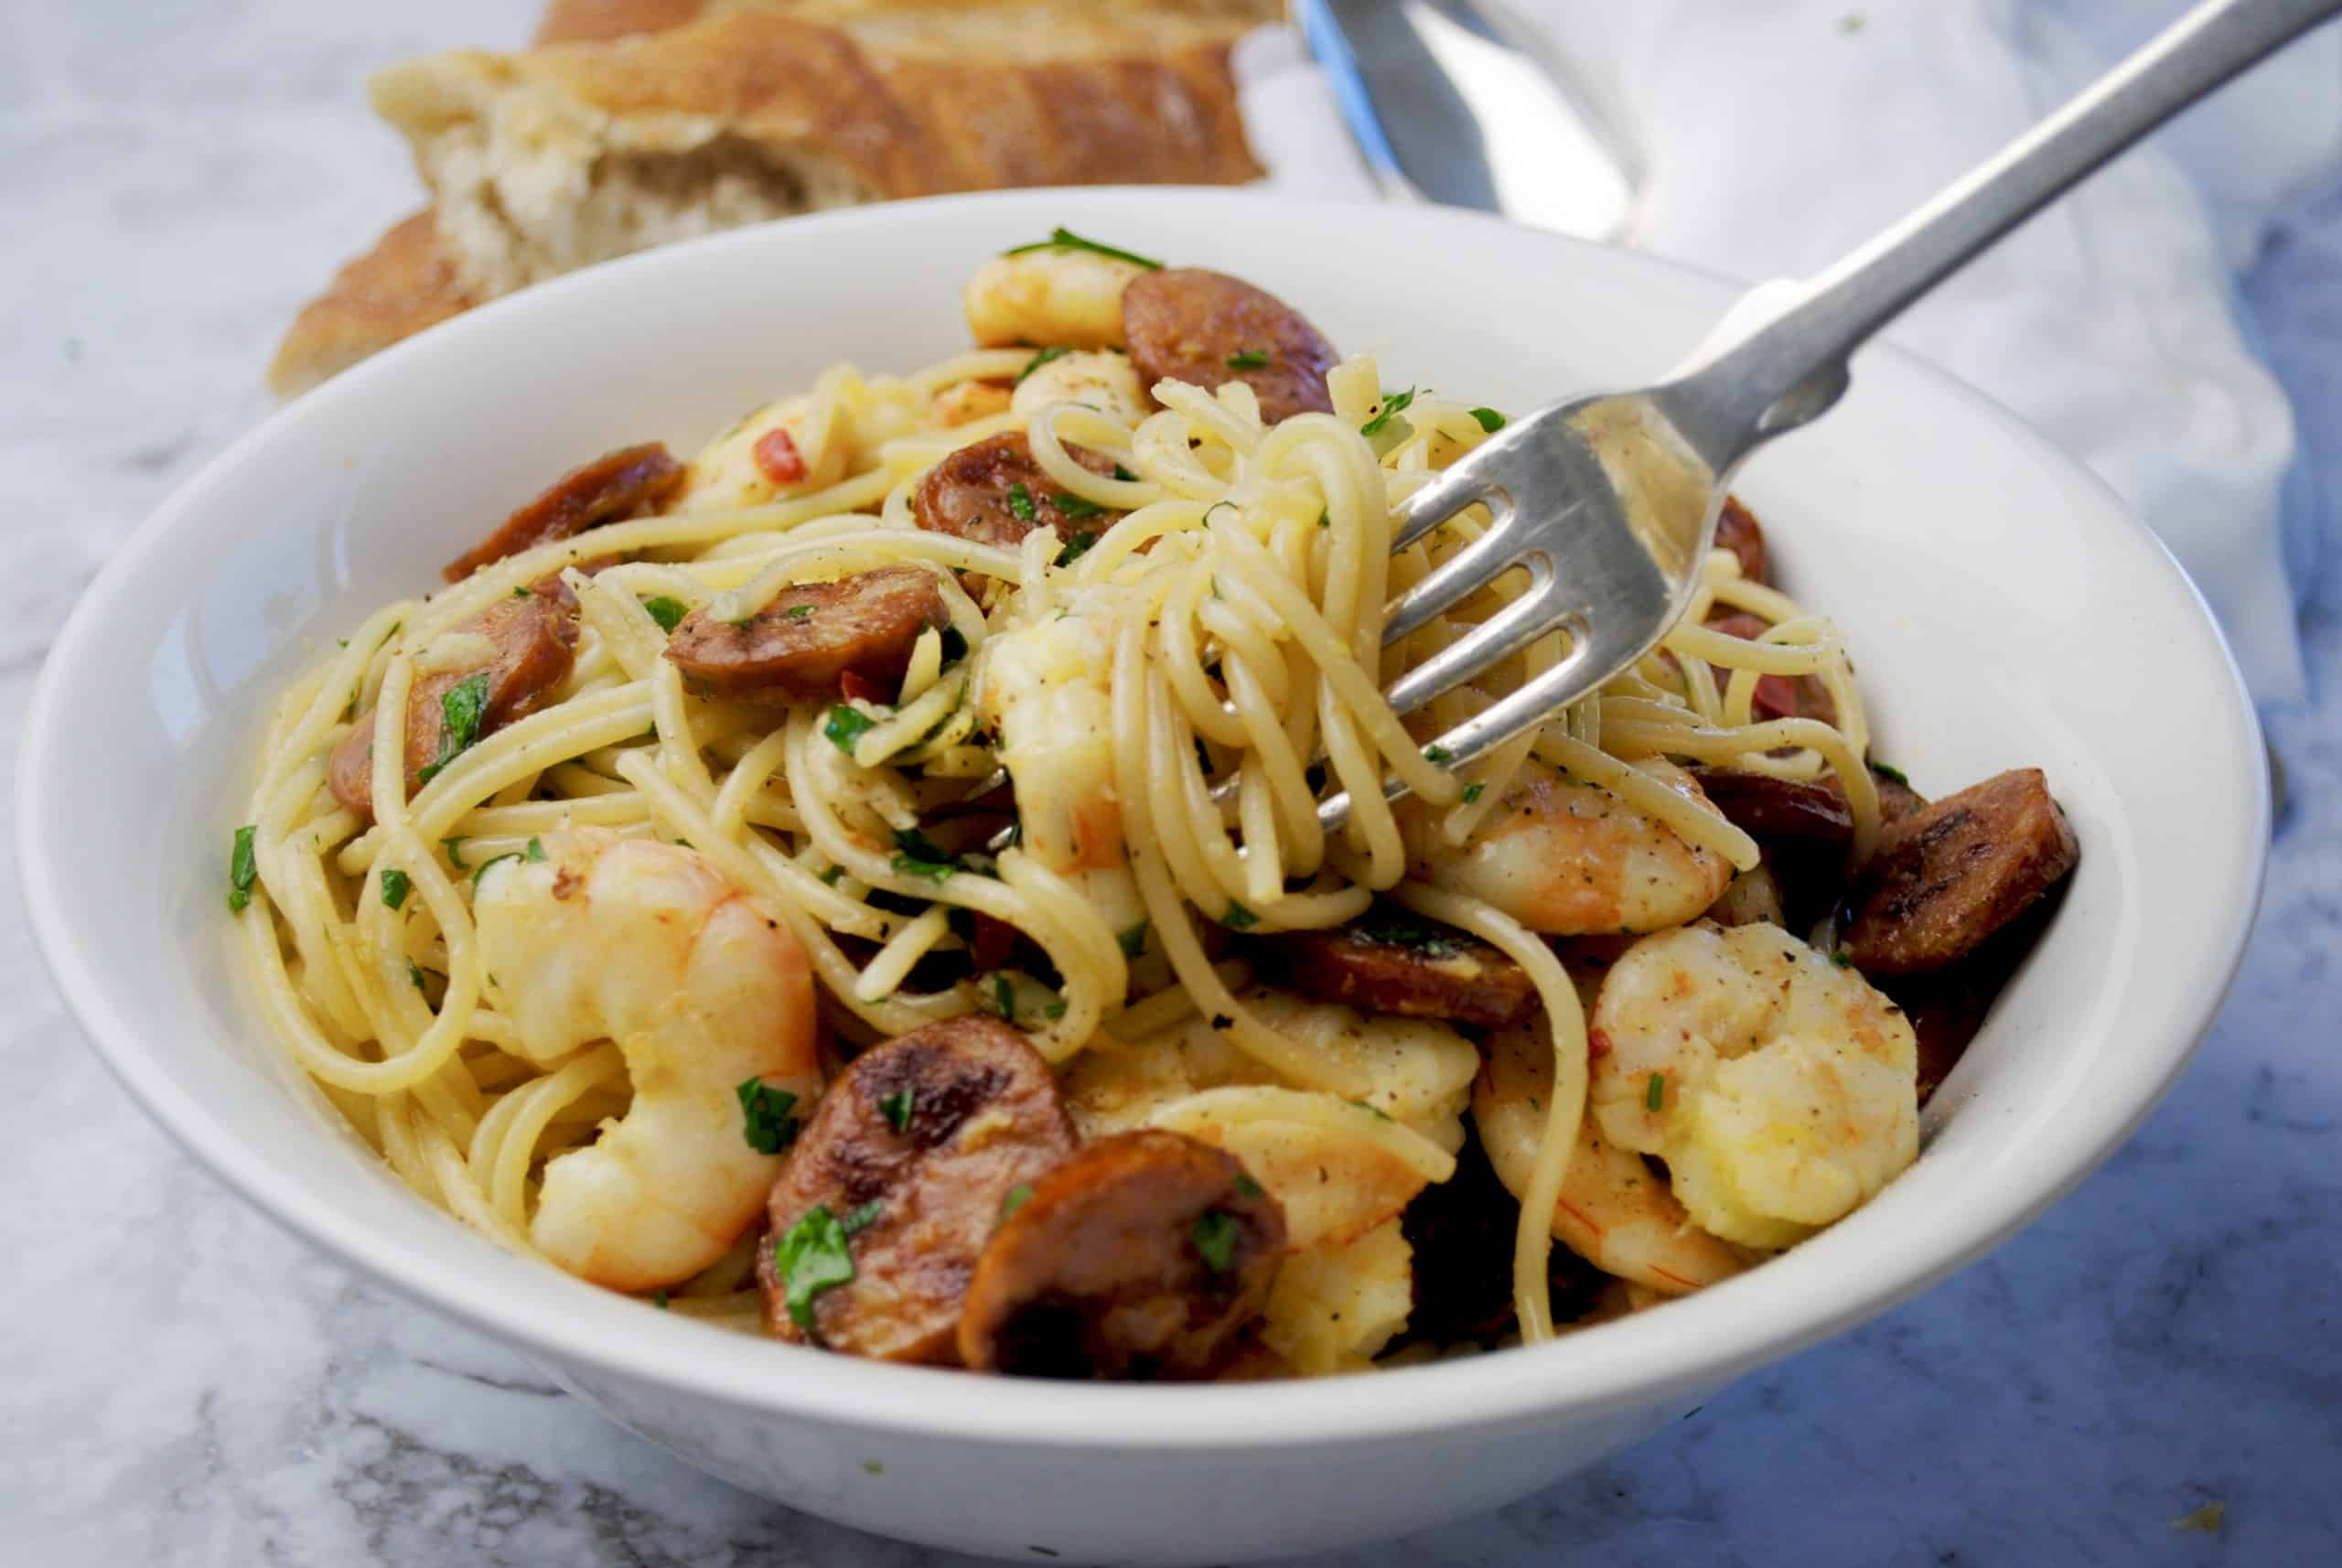 Chorizo & Prawn Pasta - Quick Spicy in white bowl with pasta twirled around a silver fork